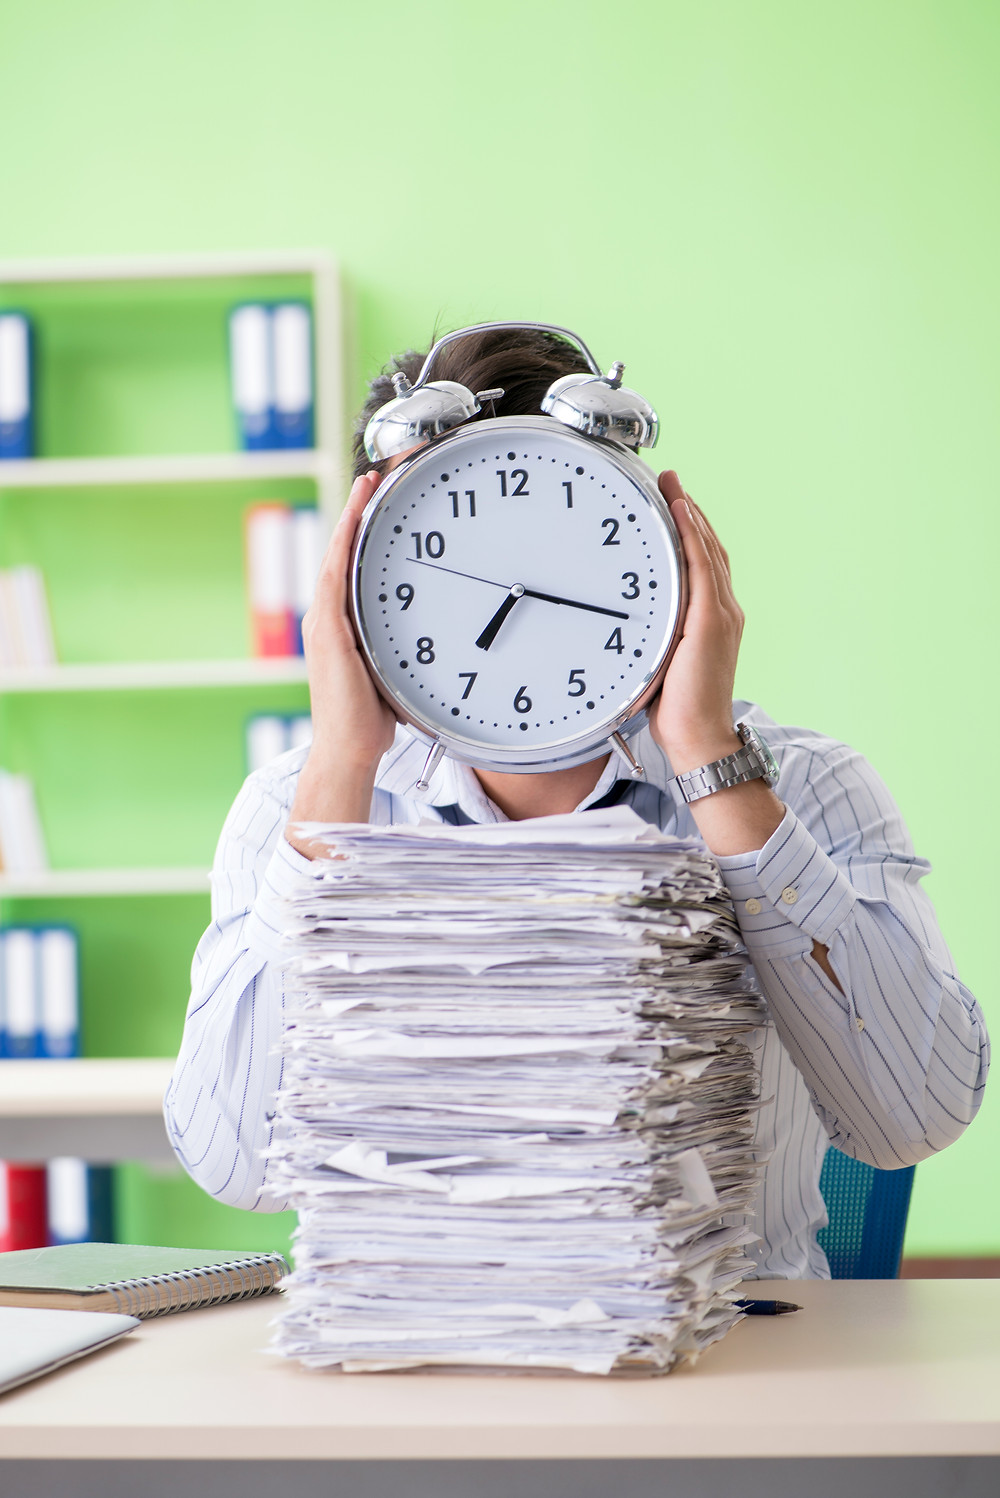 Busy businessman with loads of paperwork and not enough time to do it